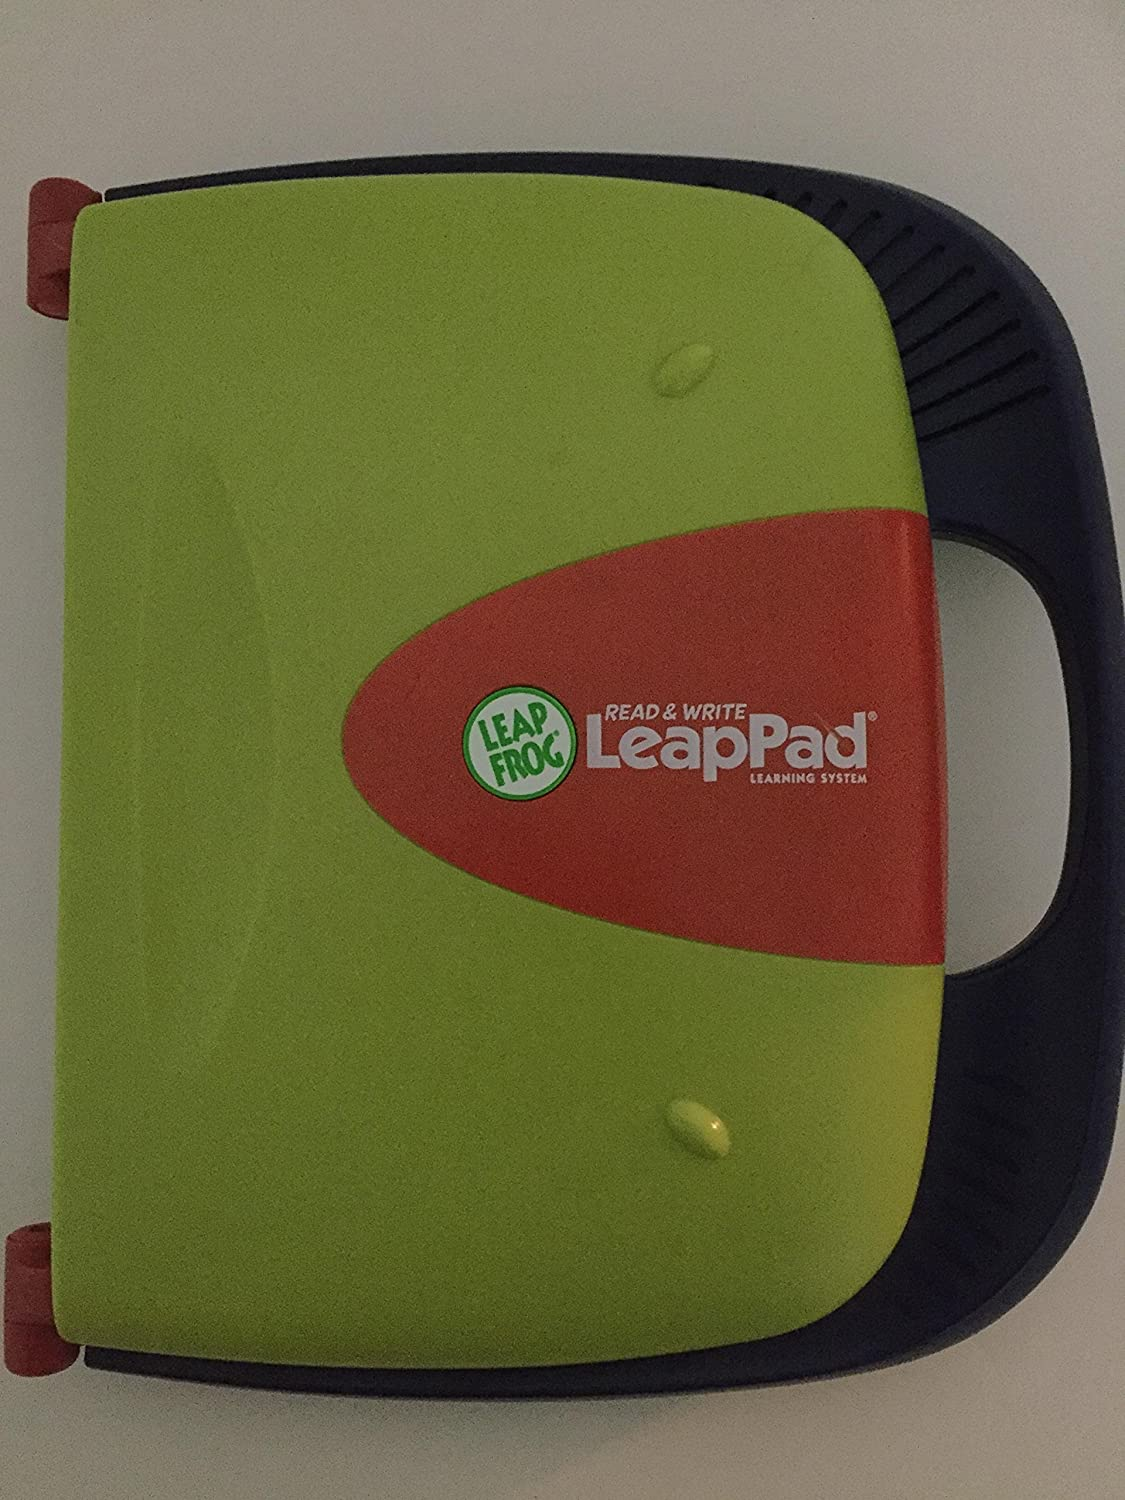 Leap Pad Read & Write System Navy Blue & Green battteries & software included